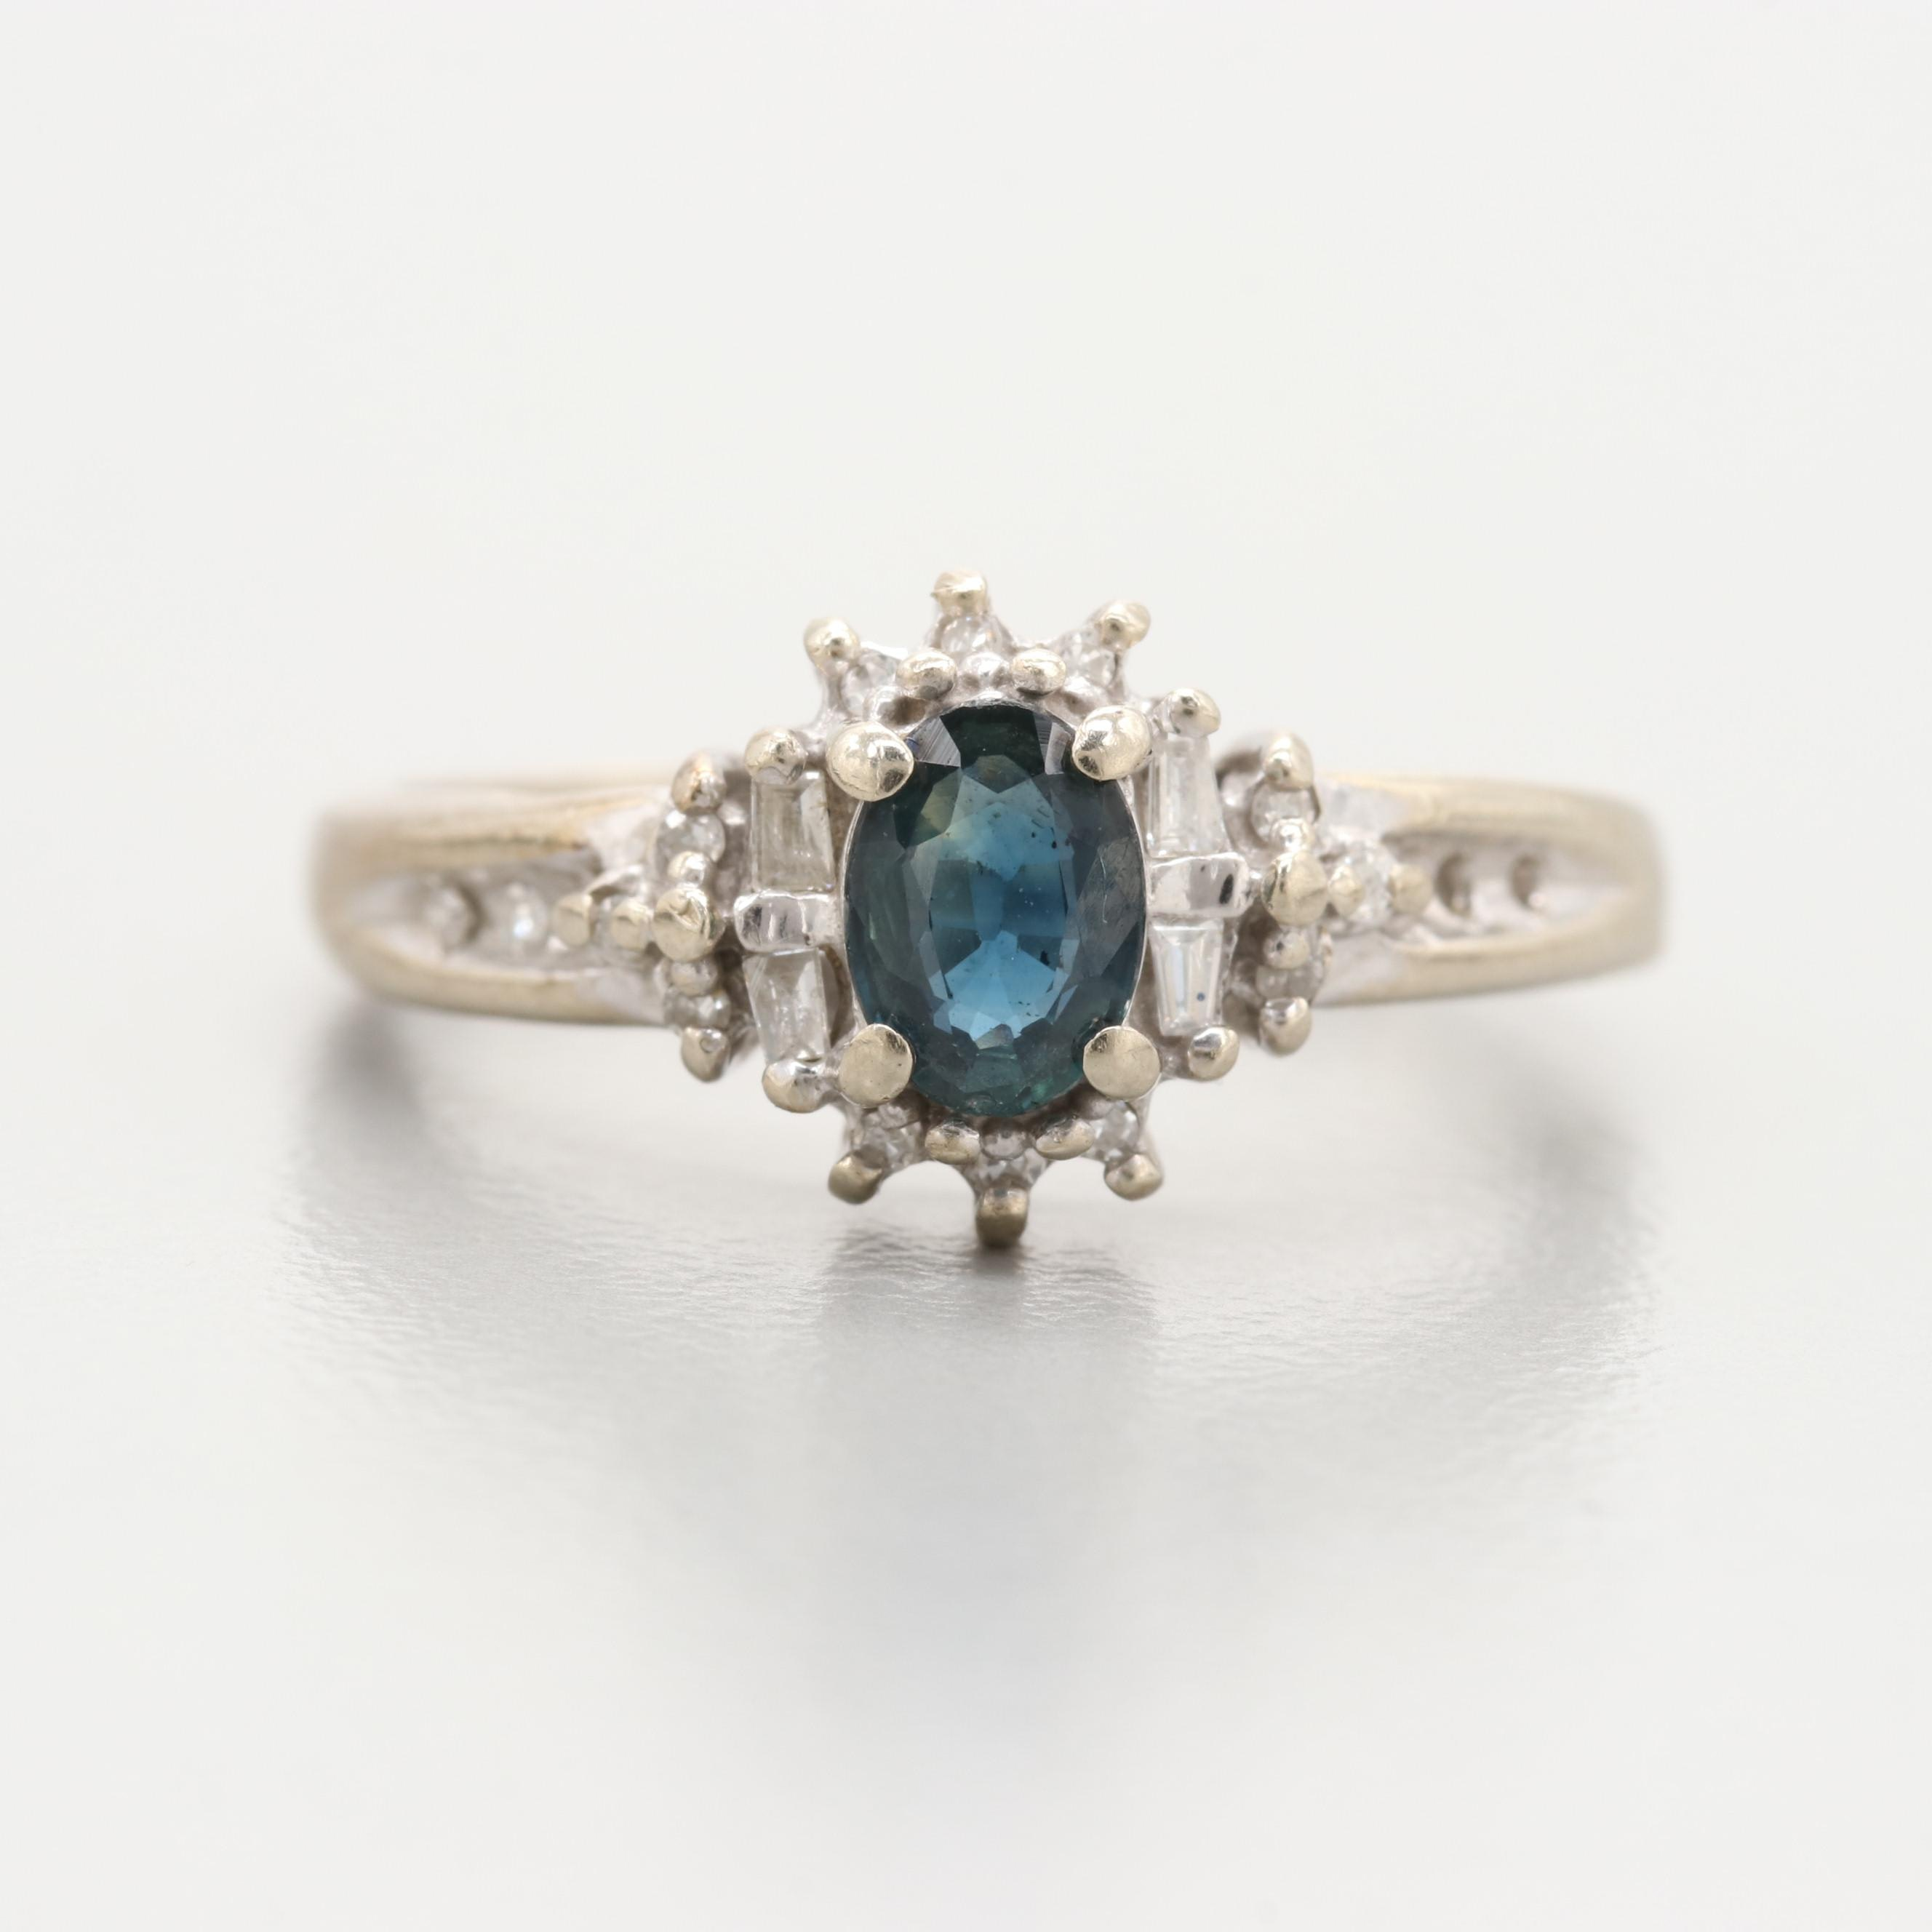 14K Yellow Gold Sapphire and Diamond Ring with White Gold Accents